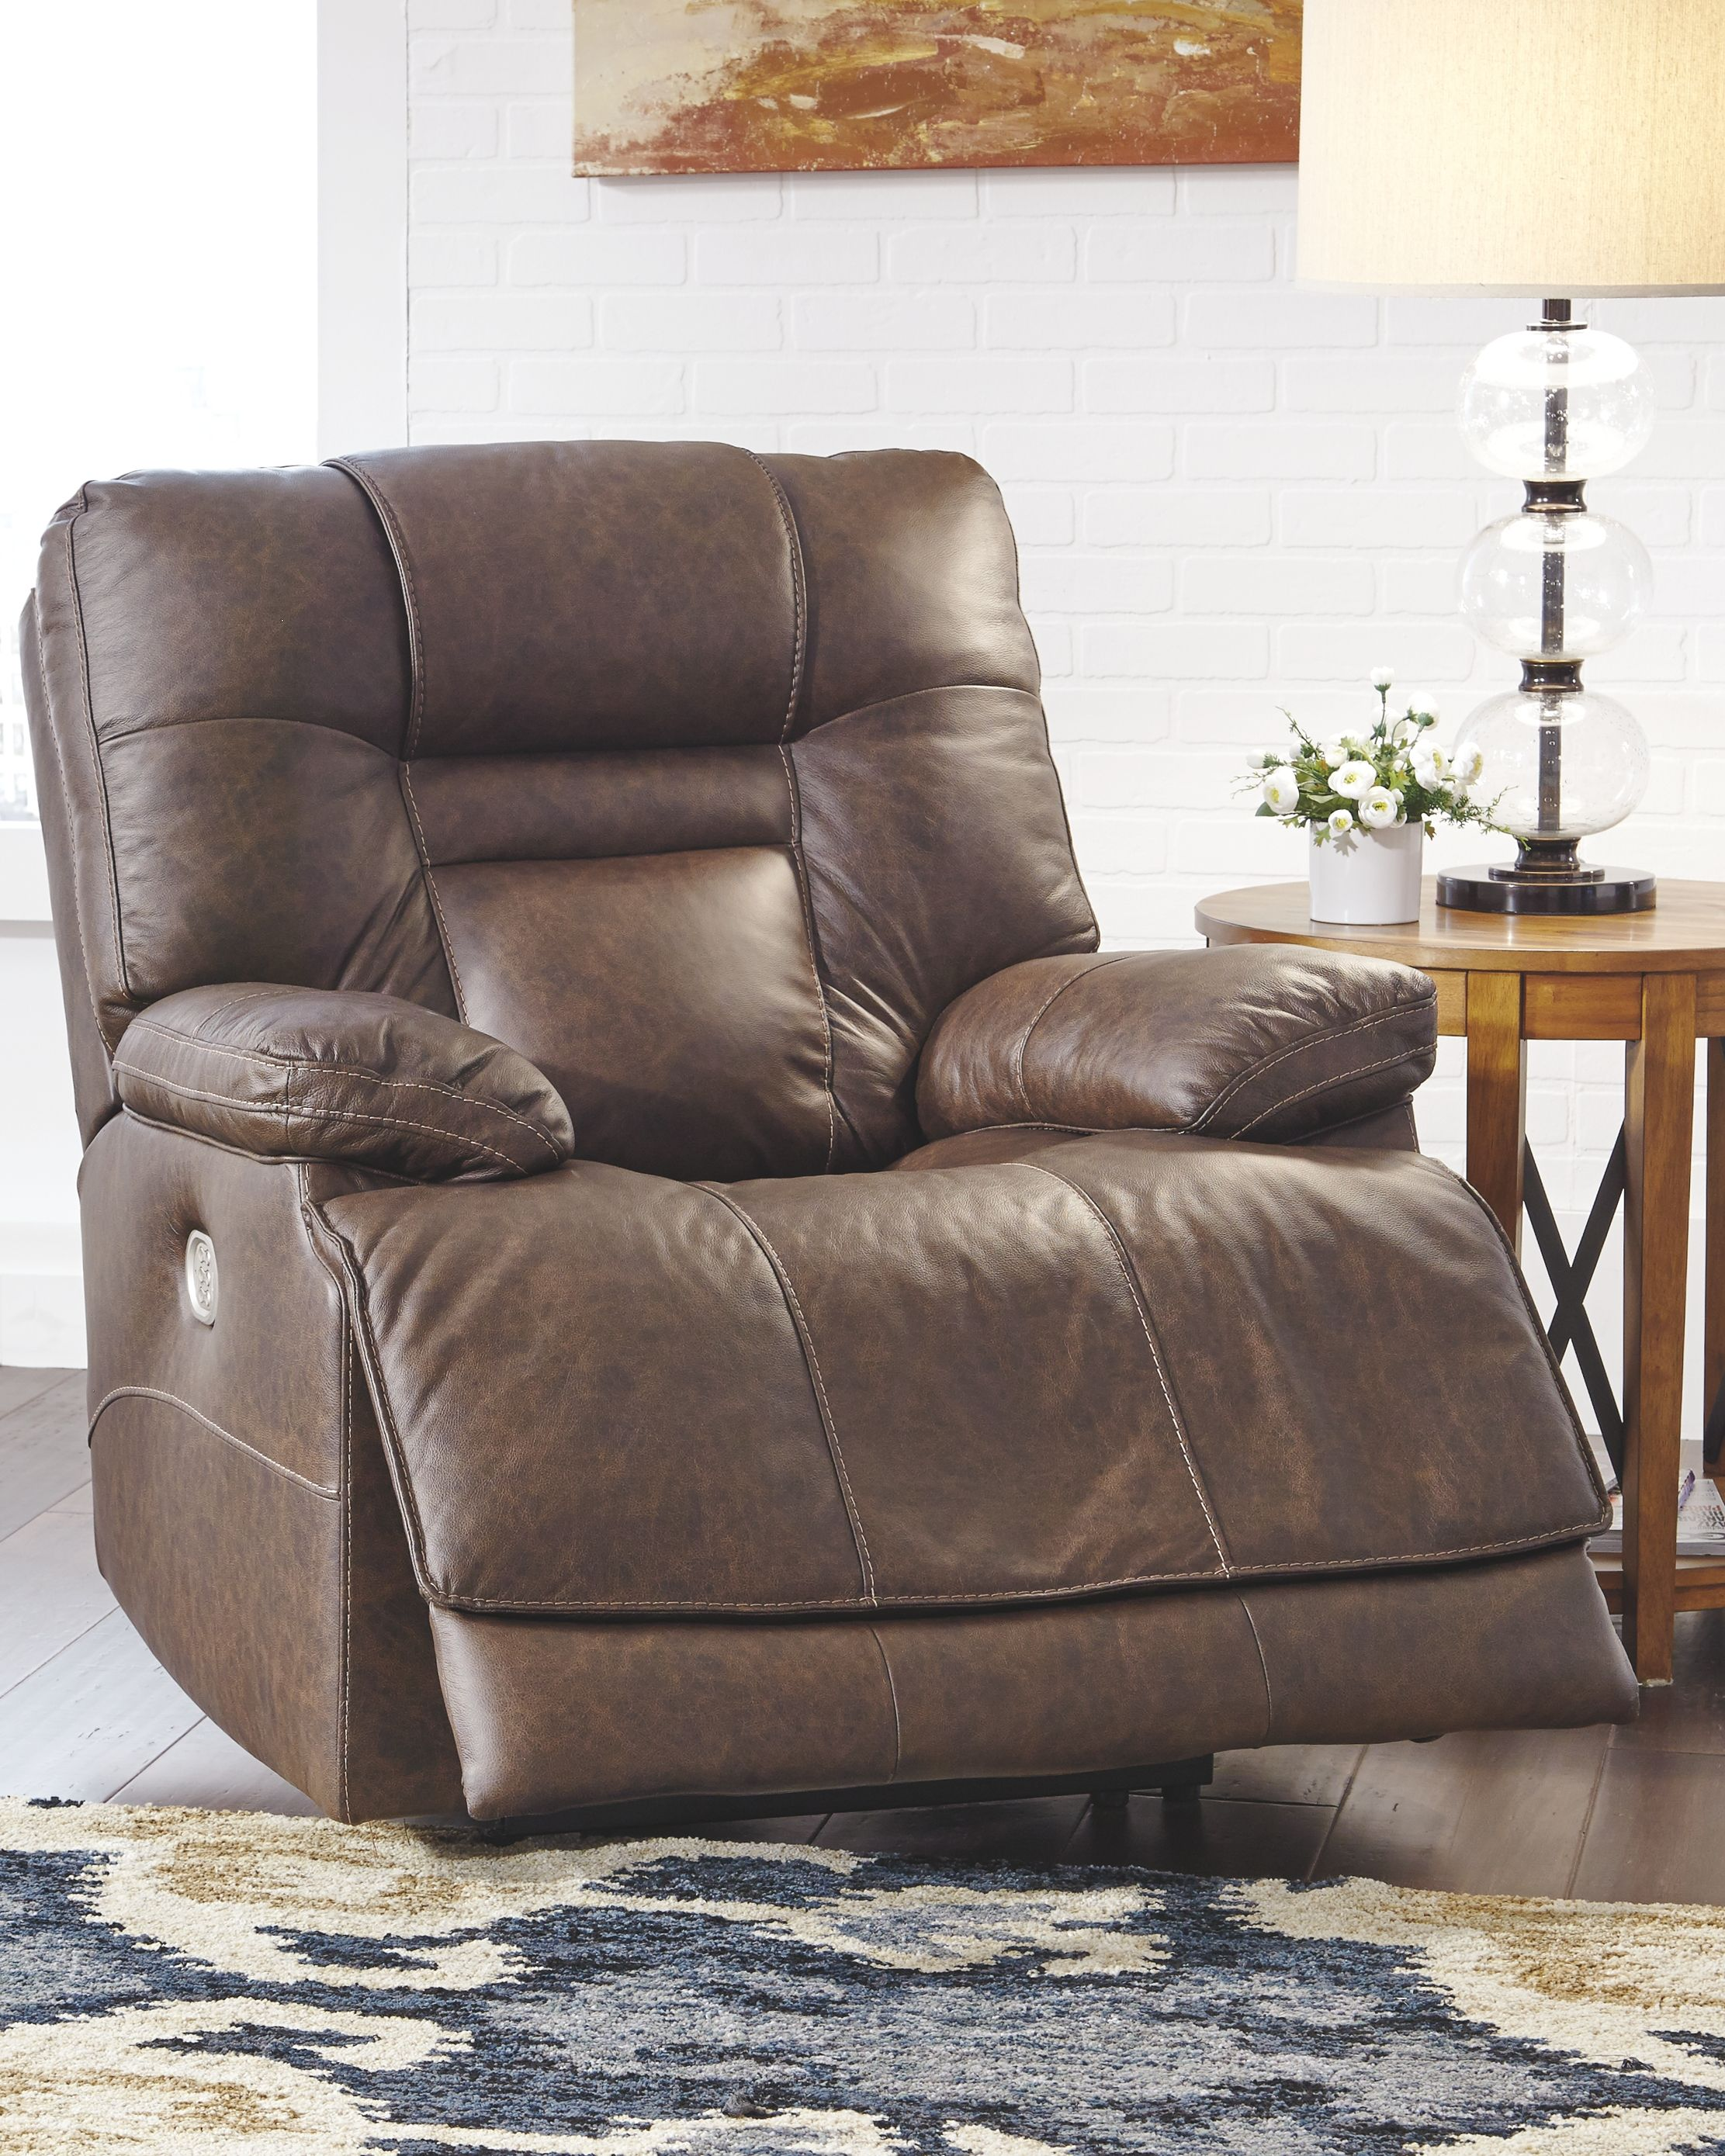 Wurstrow Power Recliner In 2020 Power Recliners Recliner Power Reclining Loveseat